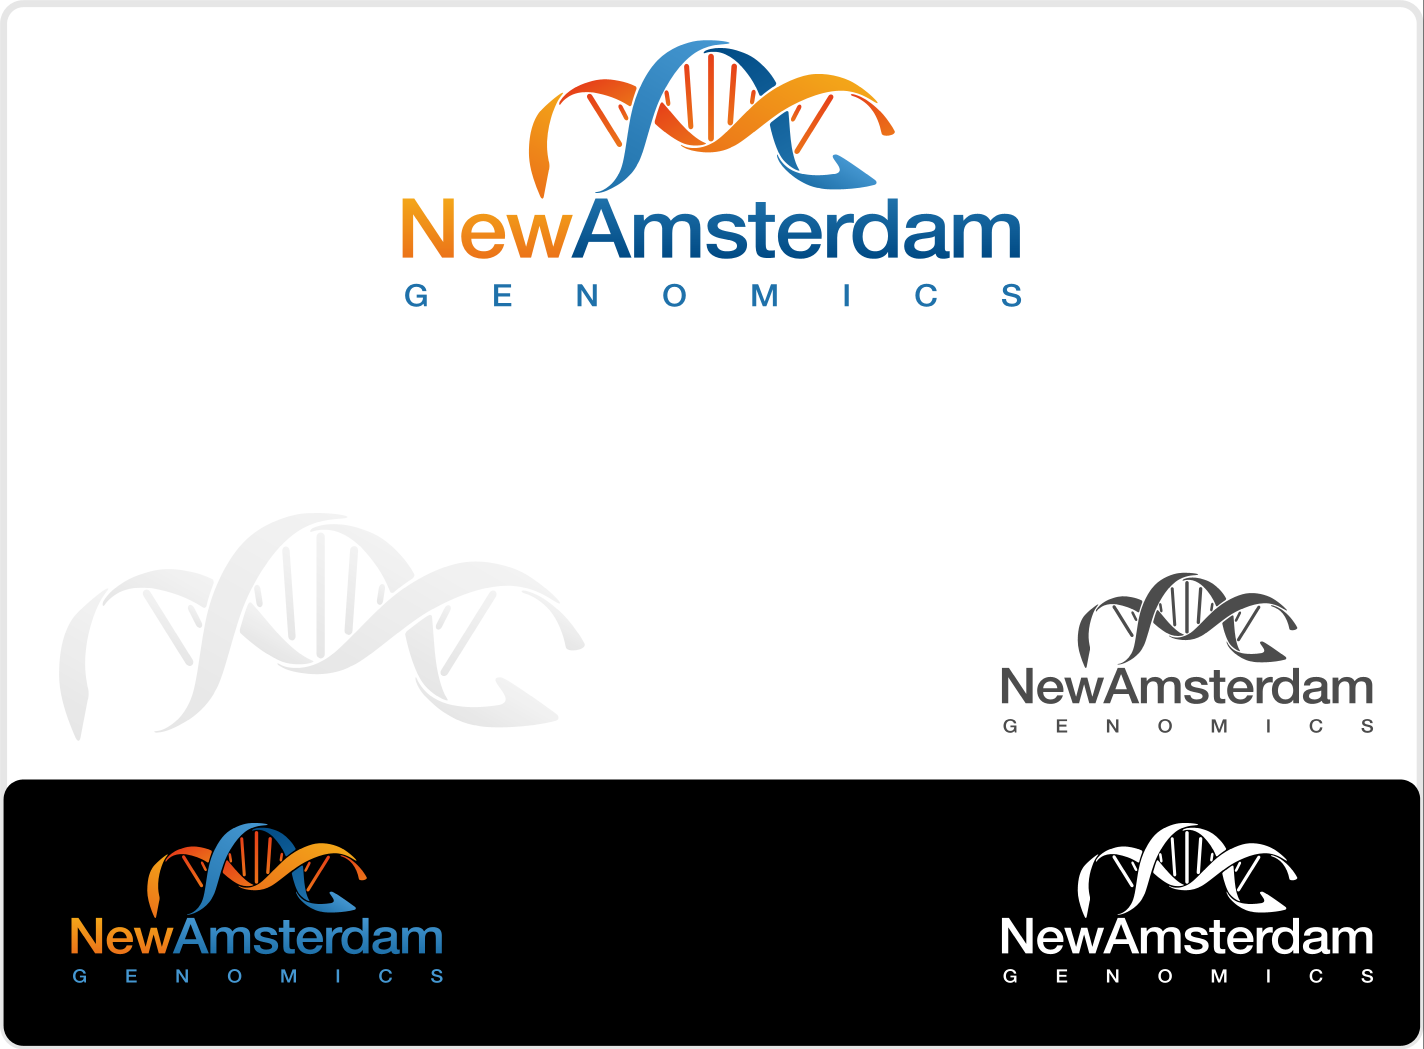 Help New Amsterdam Genomics with a new logo